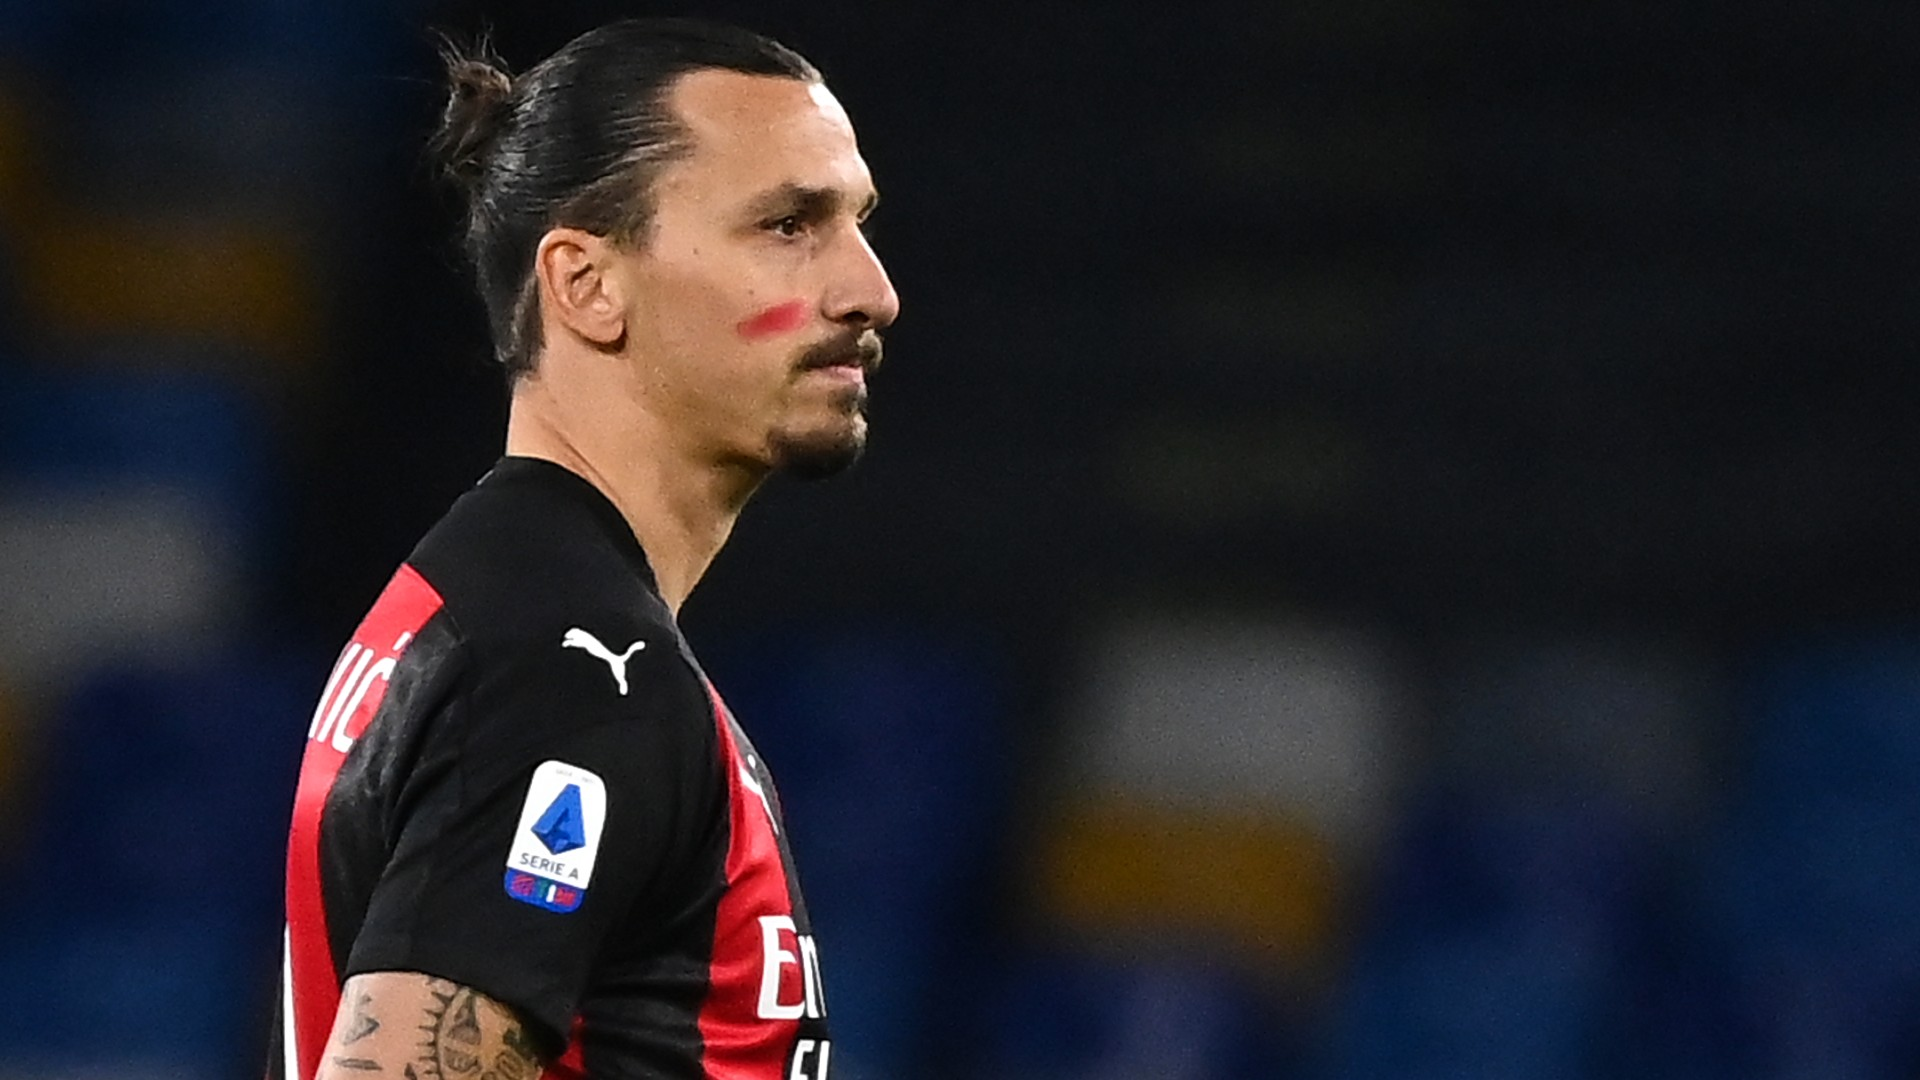 Huge blow for AC Milan as Ibrahimovic ruled out of crunch Juventus clash